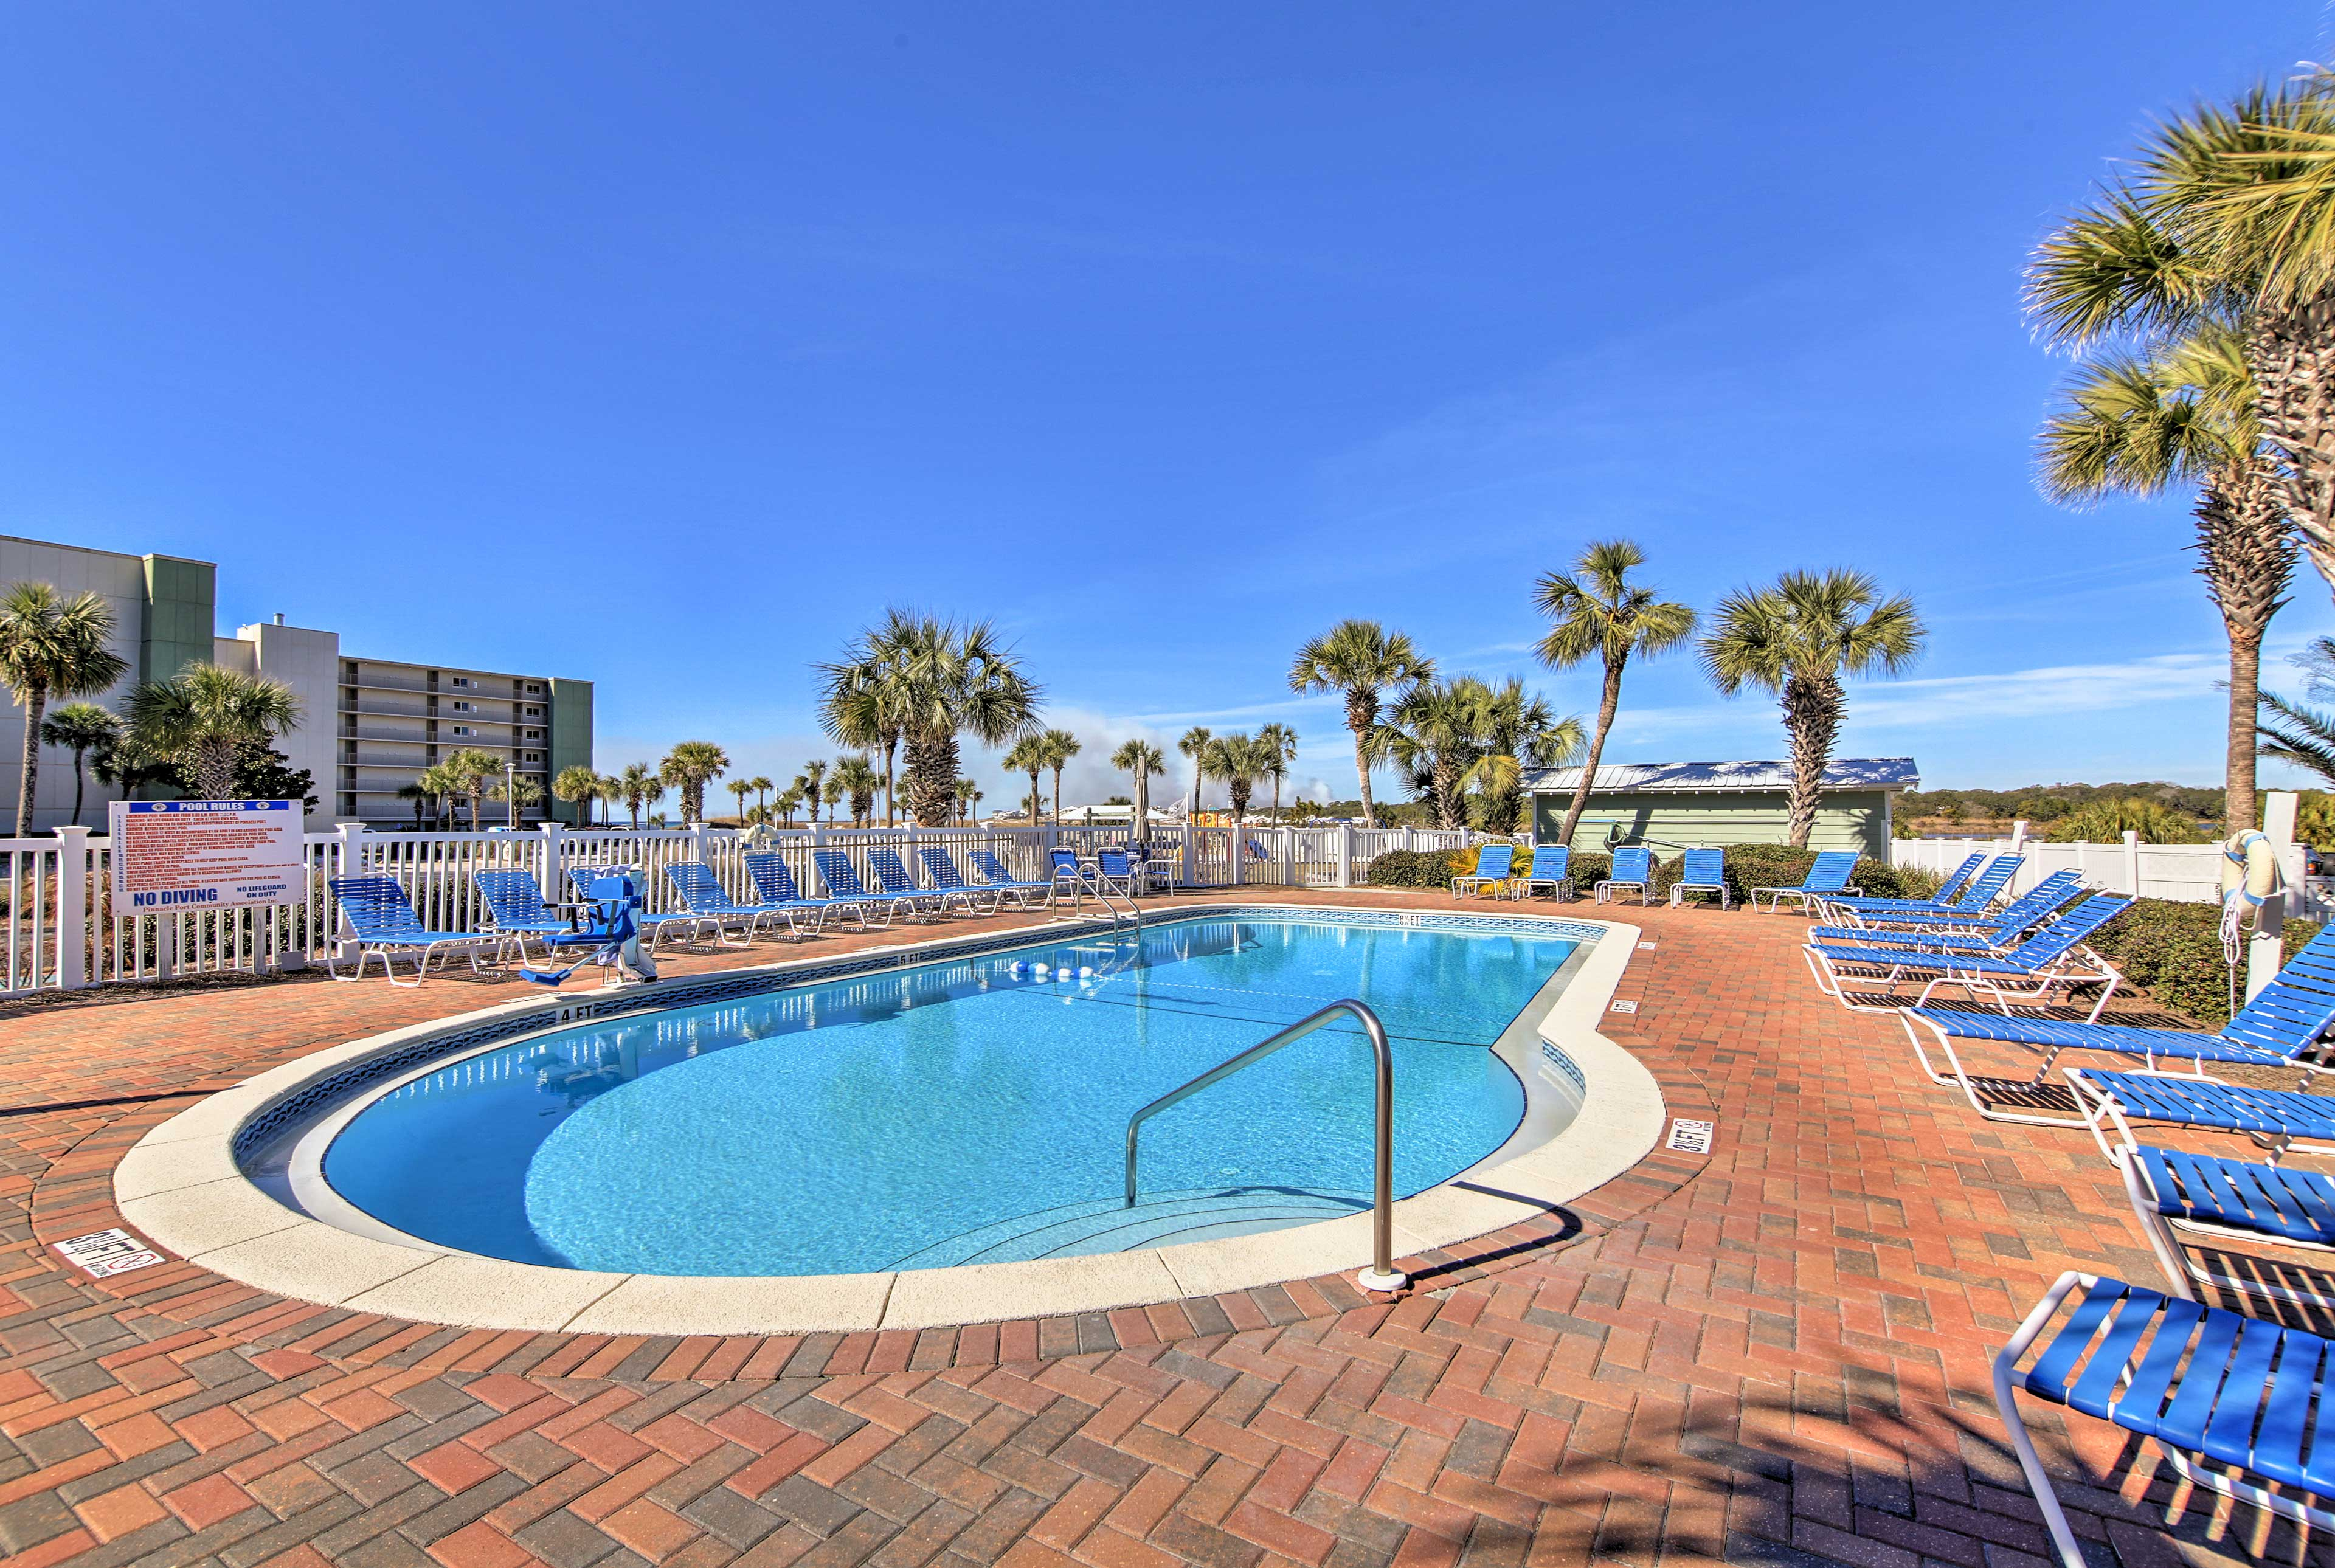 Located in the Pinnacle Port condos, this condo offers tons of amenities!